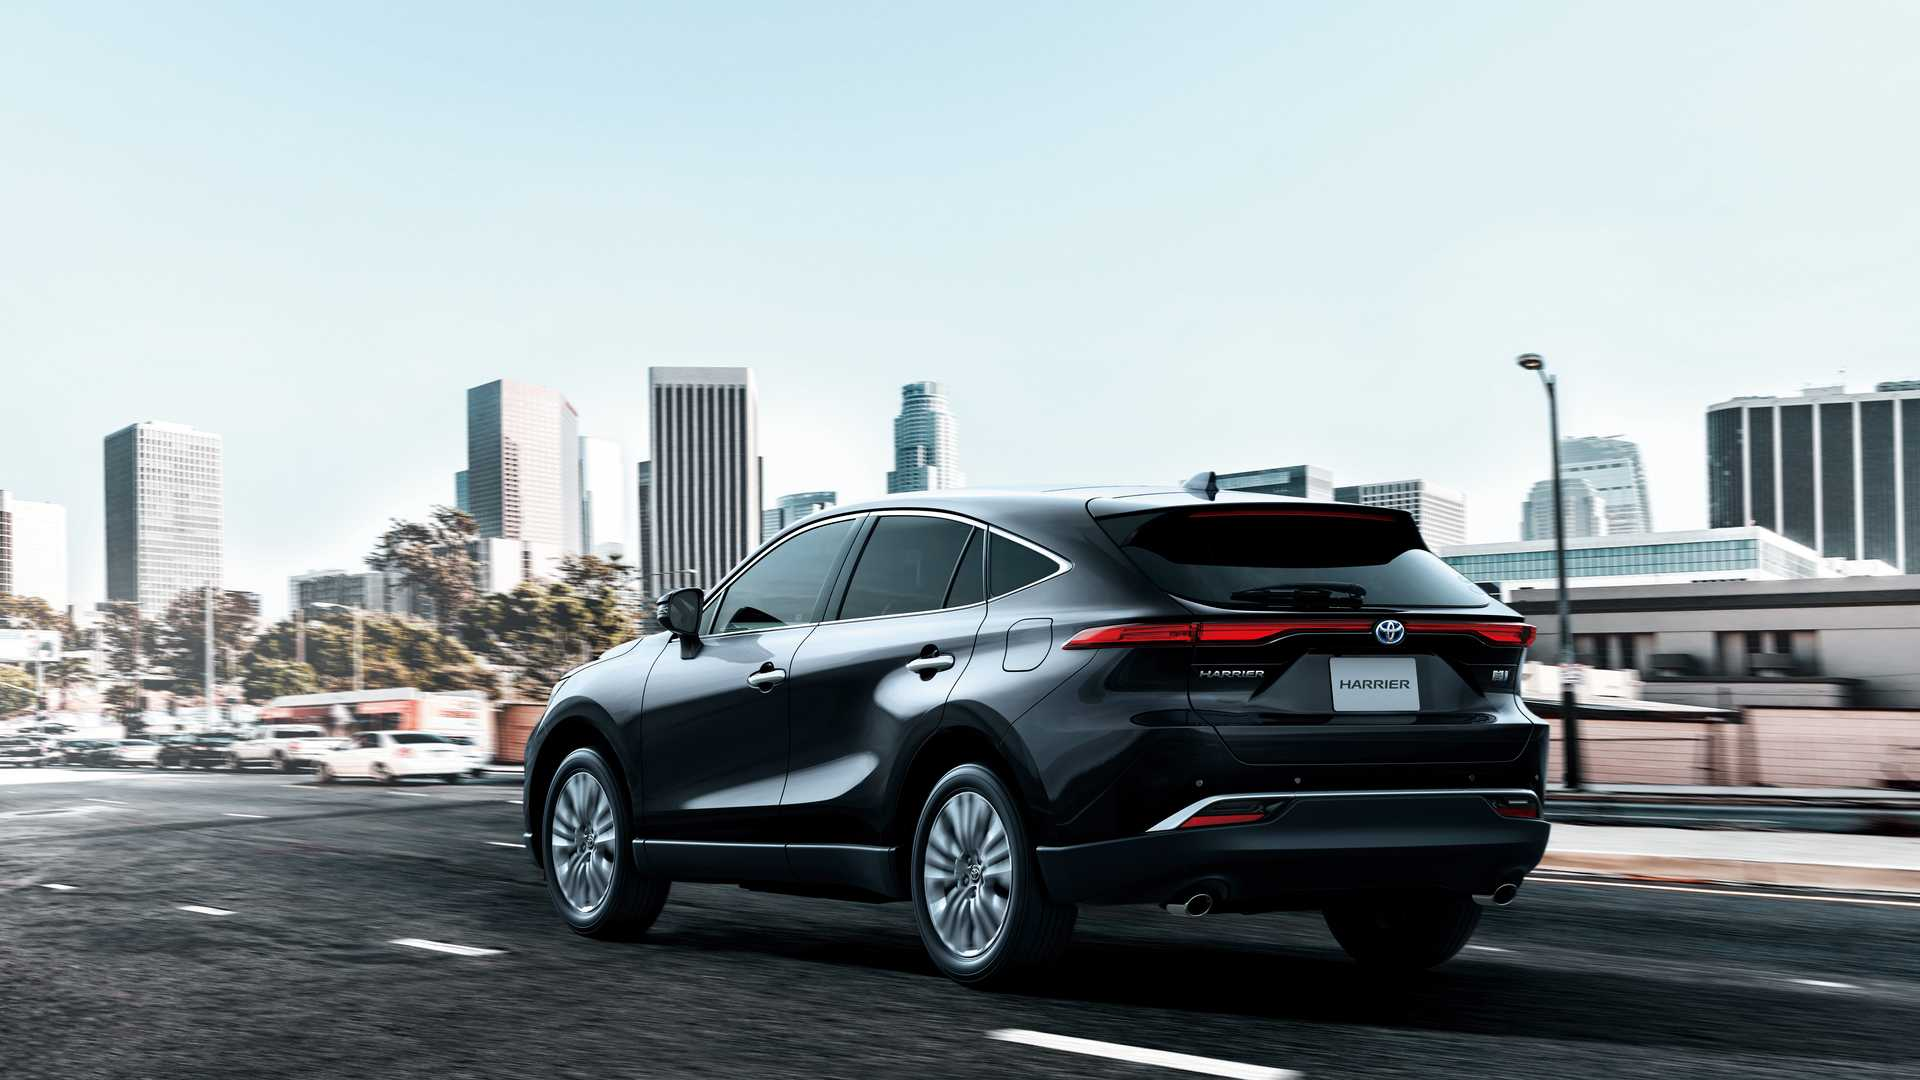 2021 Toyota Harrier SUV Officially Revealed; Not Coming to ...